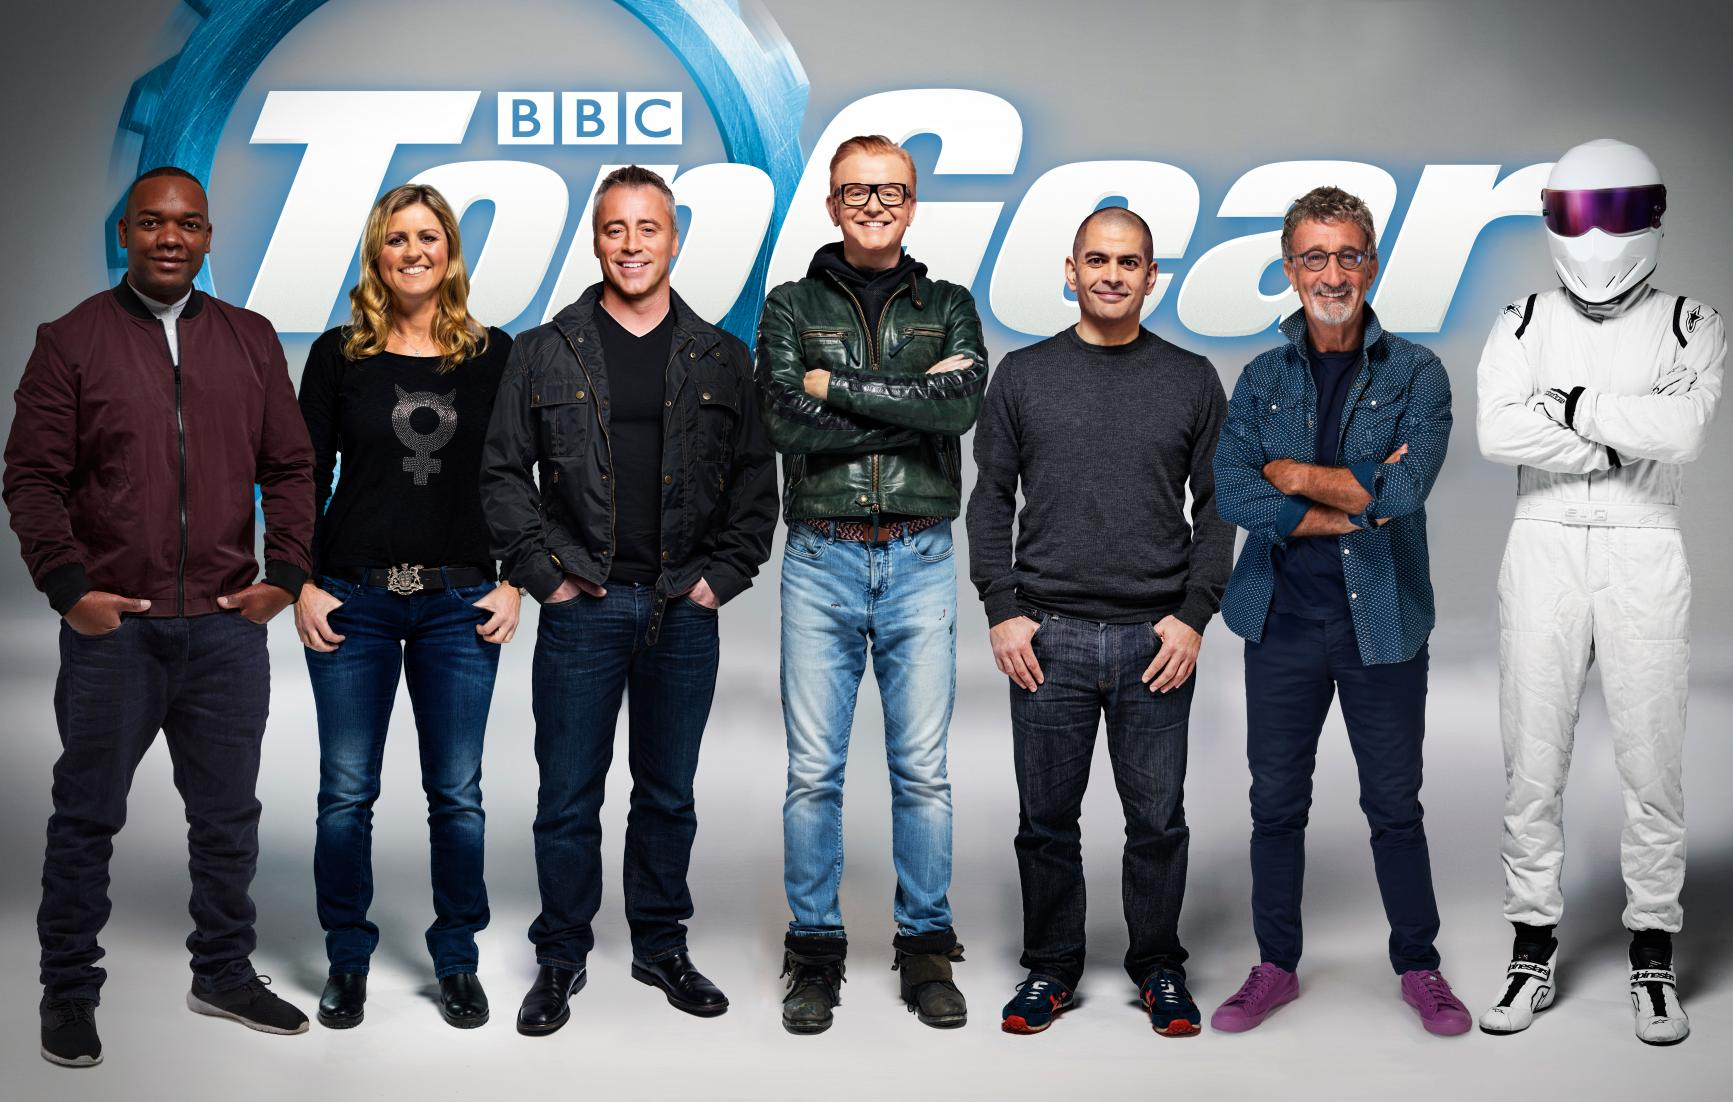 The New Top Gear Finally Releases Full Cast Lineup